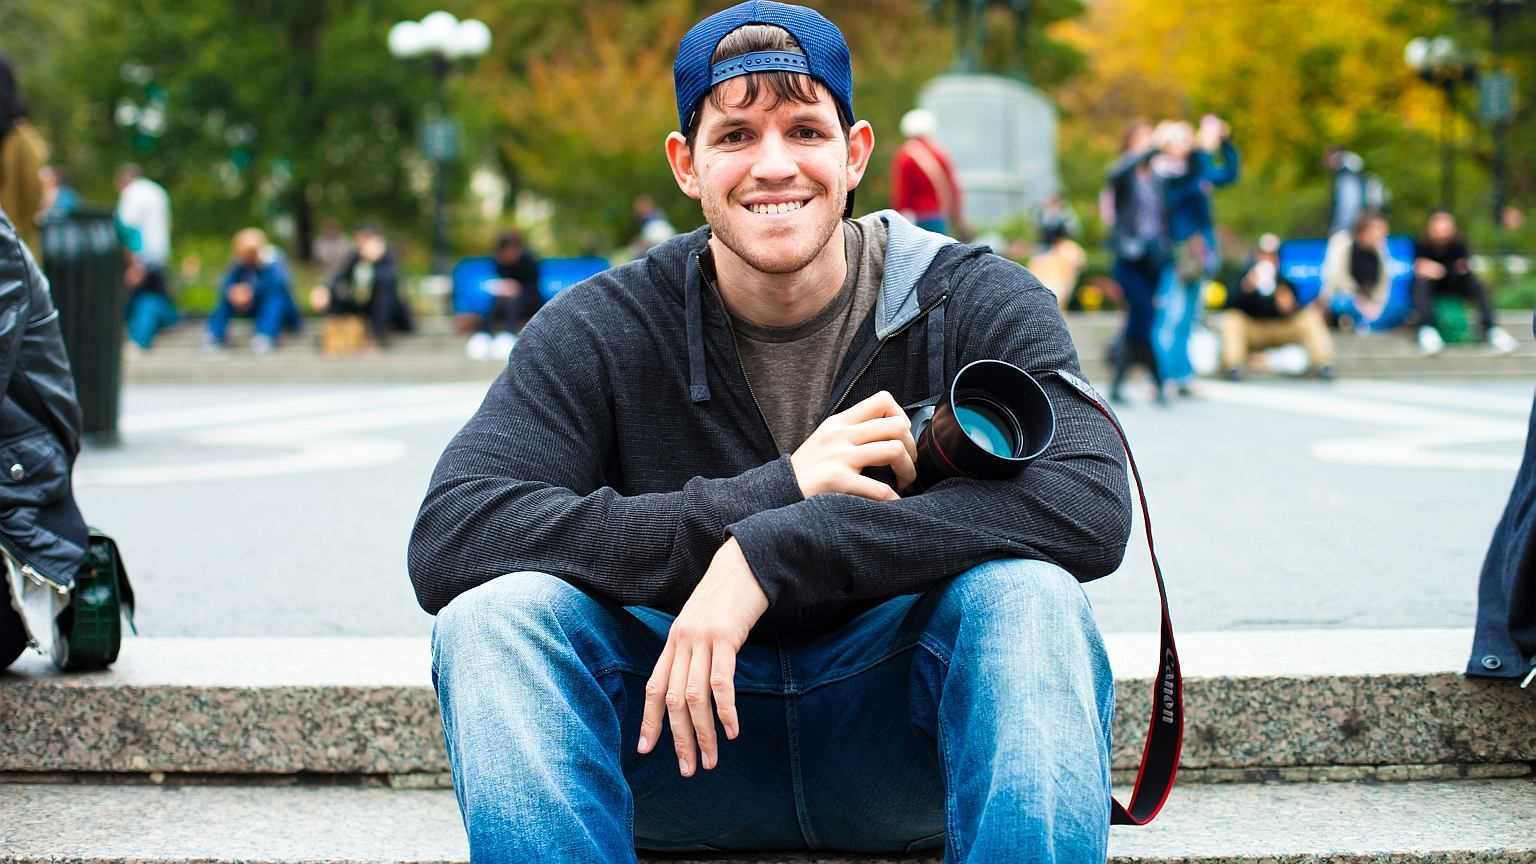 Brandon Stanton, twórca 'Humans of New York'